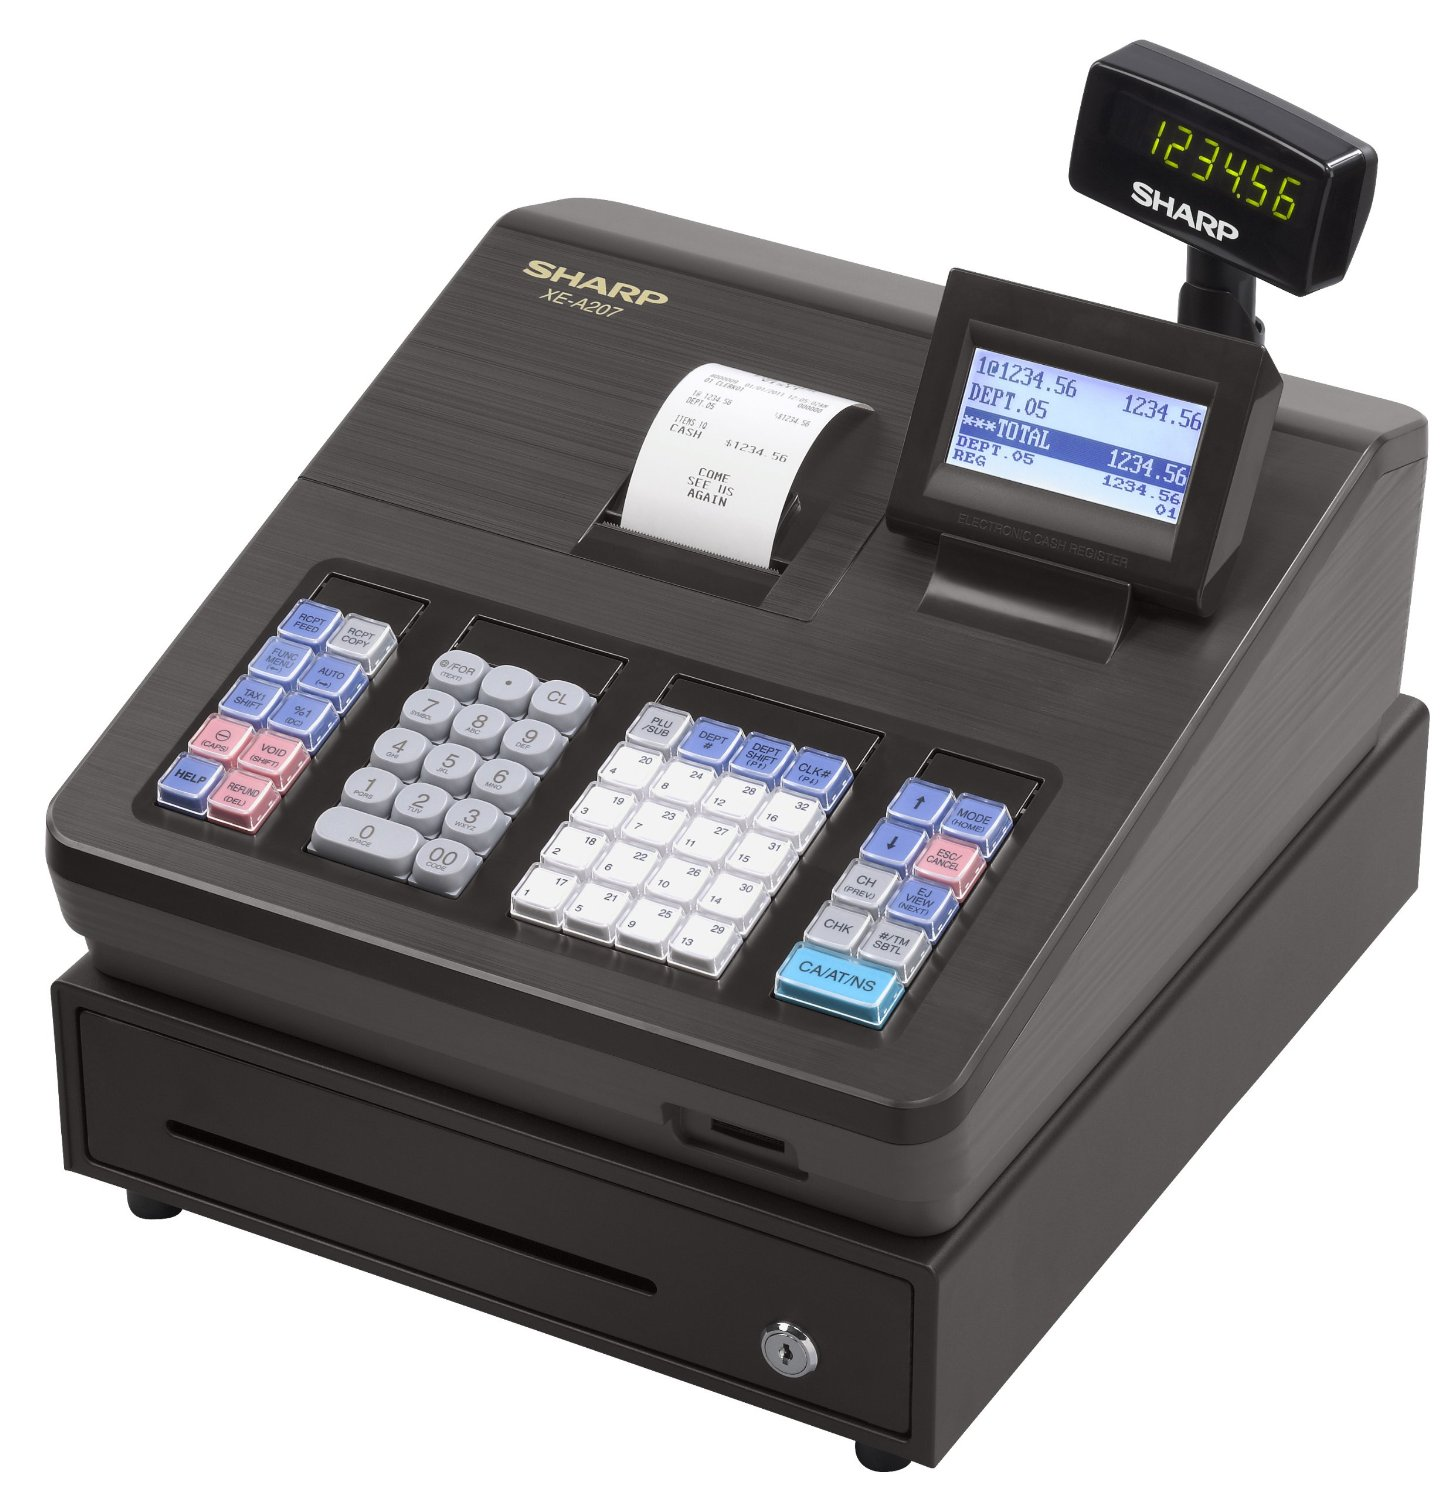 Sharp XE-A207 Cash Register Reconditioned